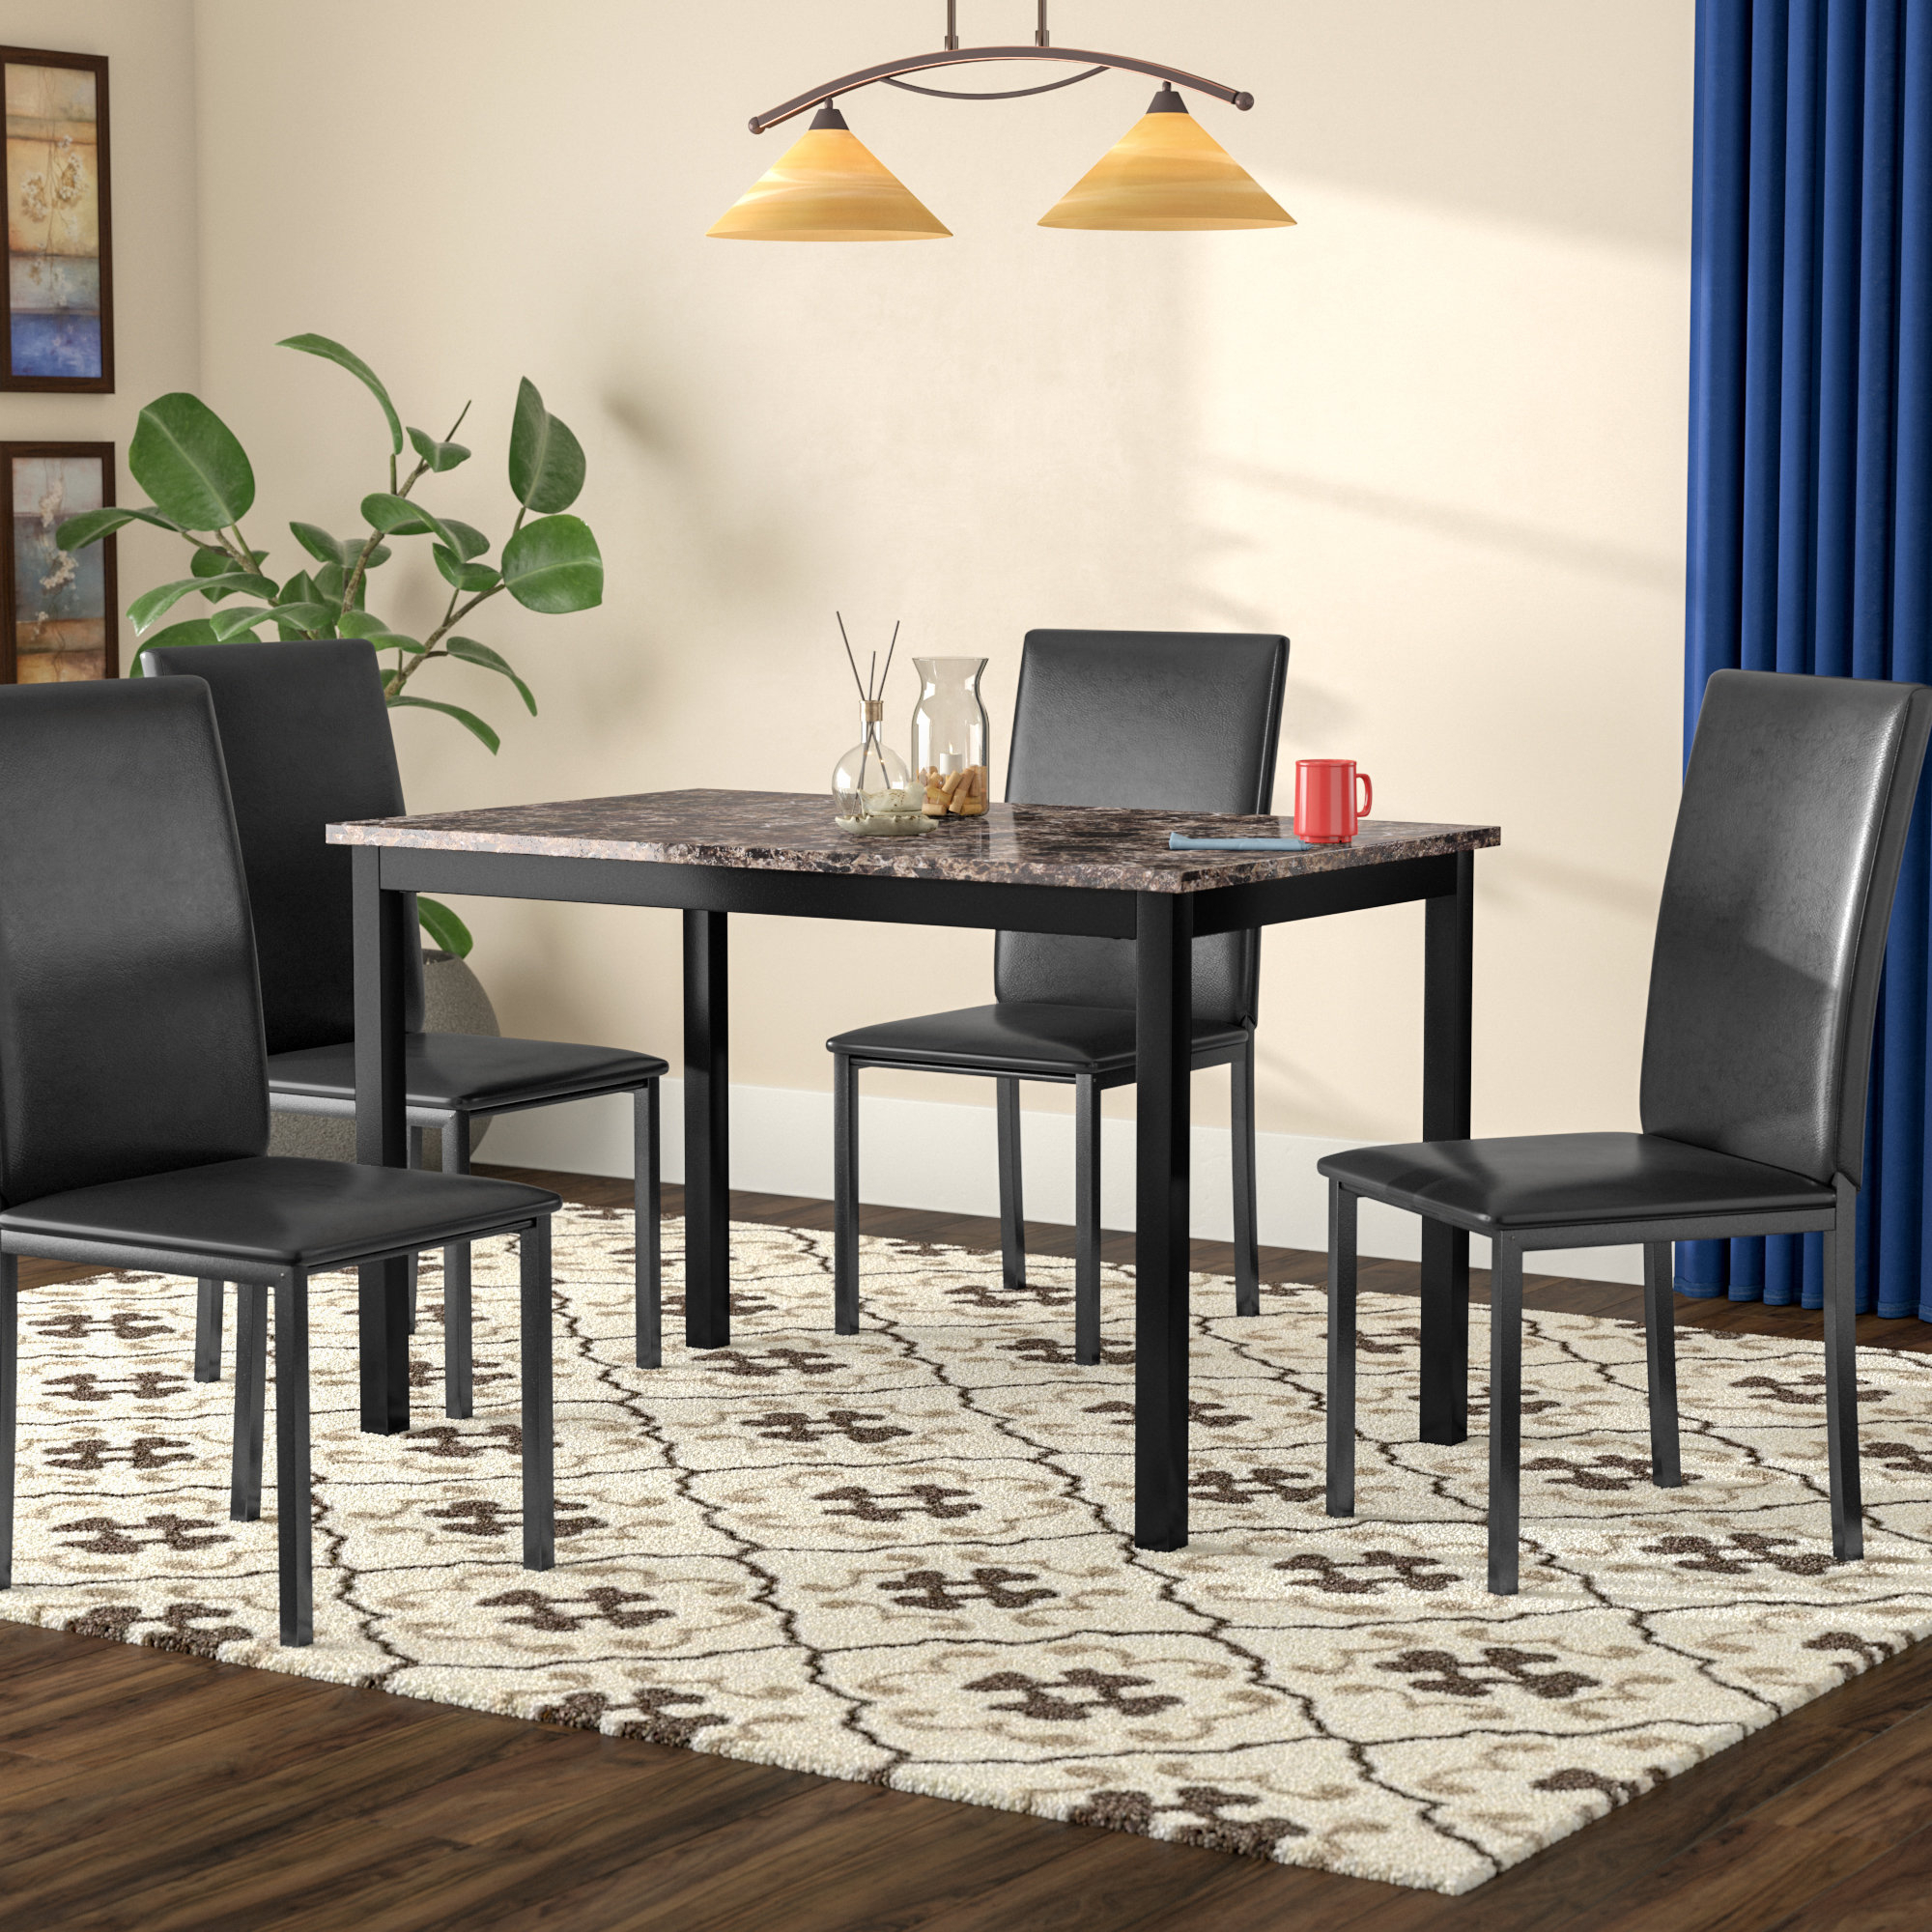 Most Popular Red Barrel Studio Noyes 5 Piece Dining Set & Reviews (View 6 of 20)